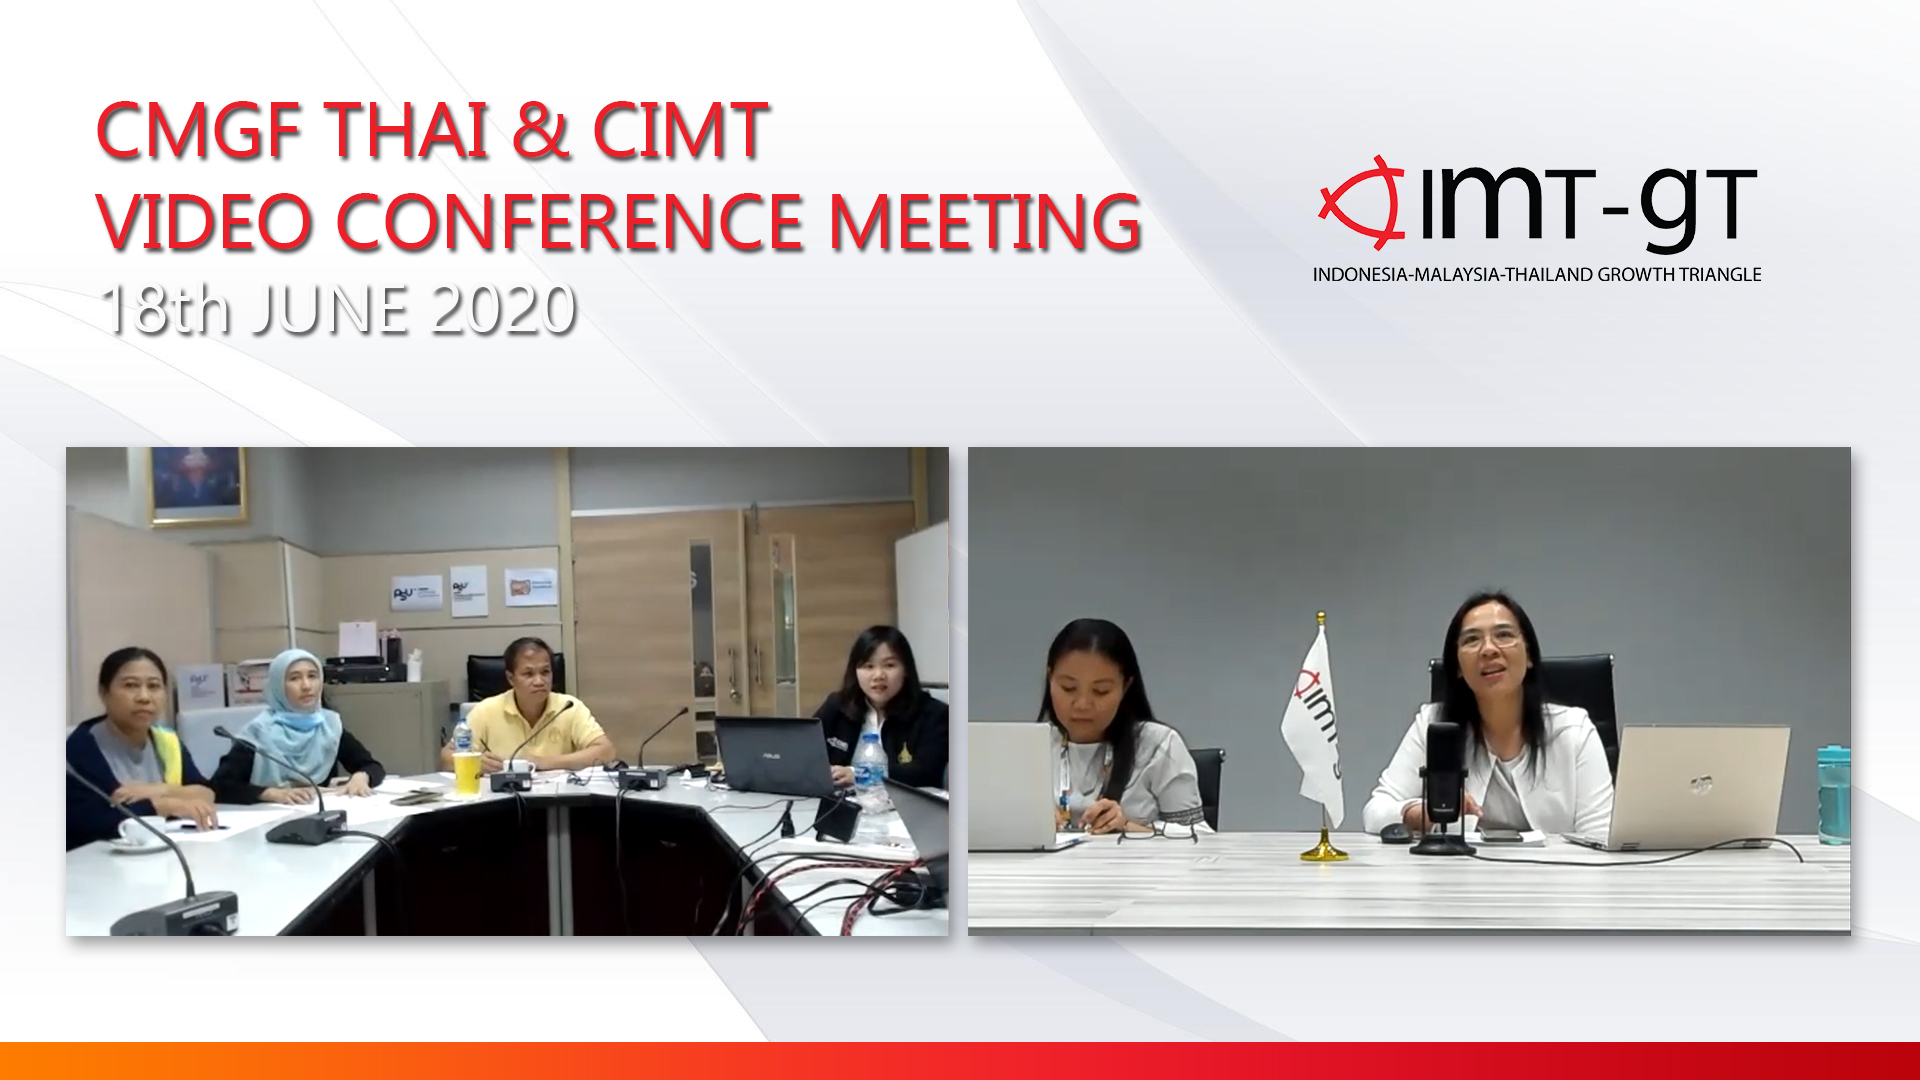 CMGF Thai & CIMT Video Conference